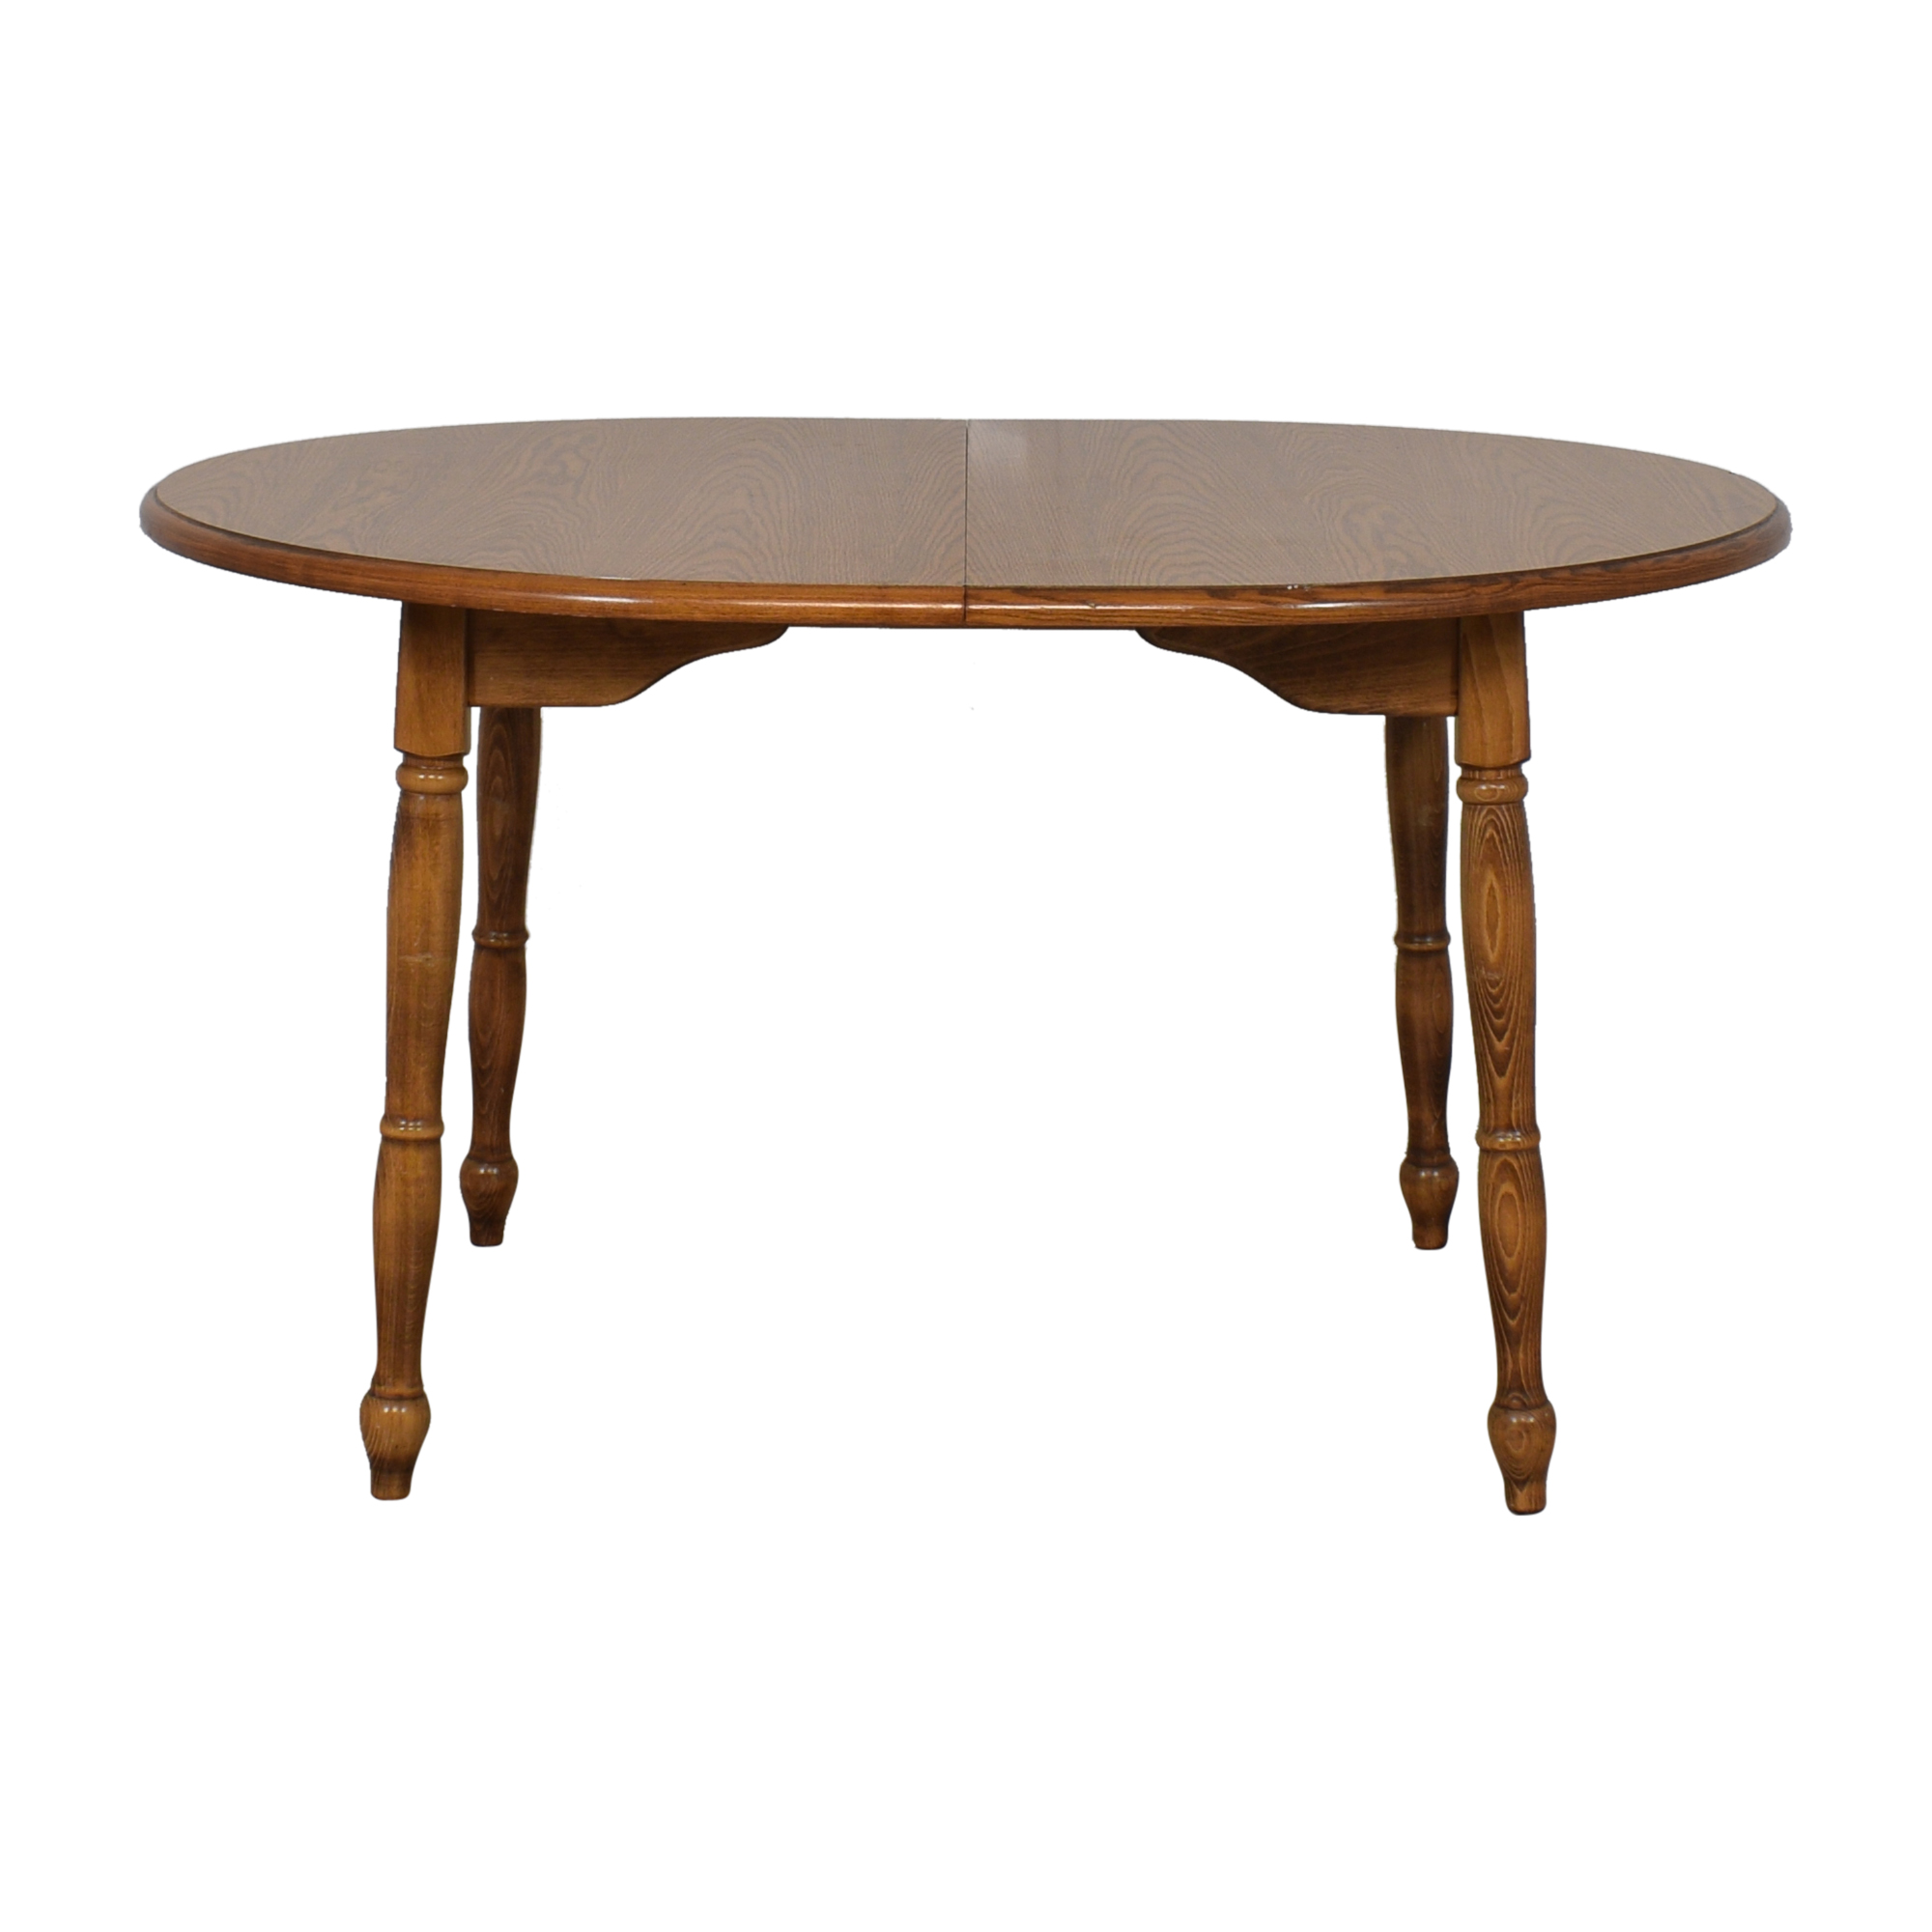 Round Extension Dining Table second hand